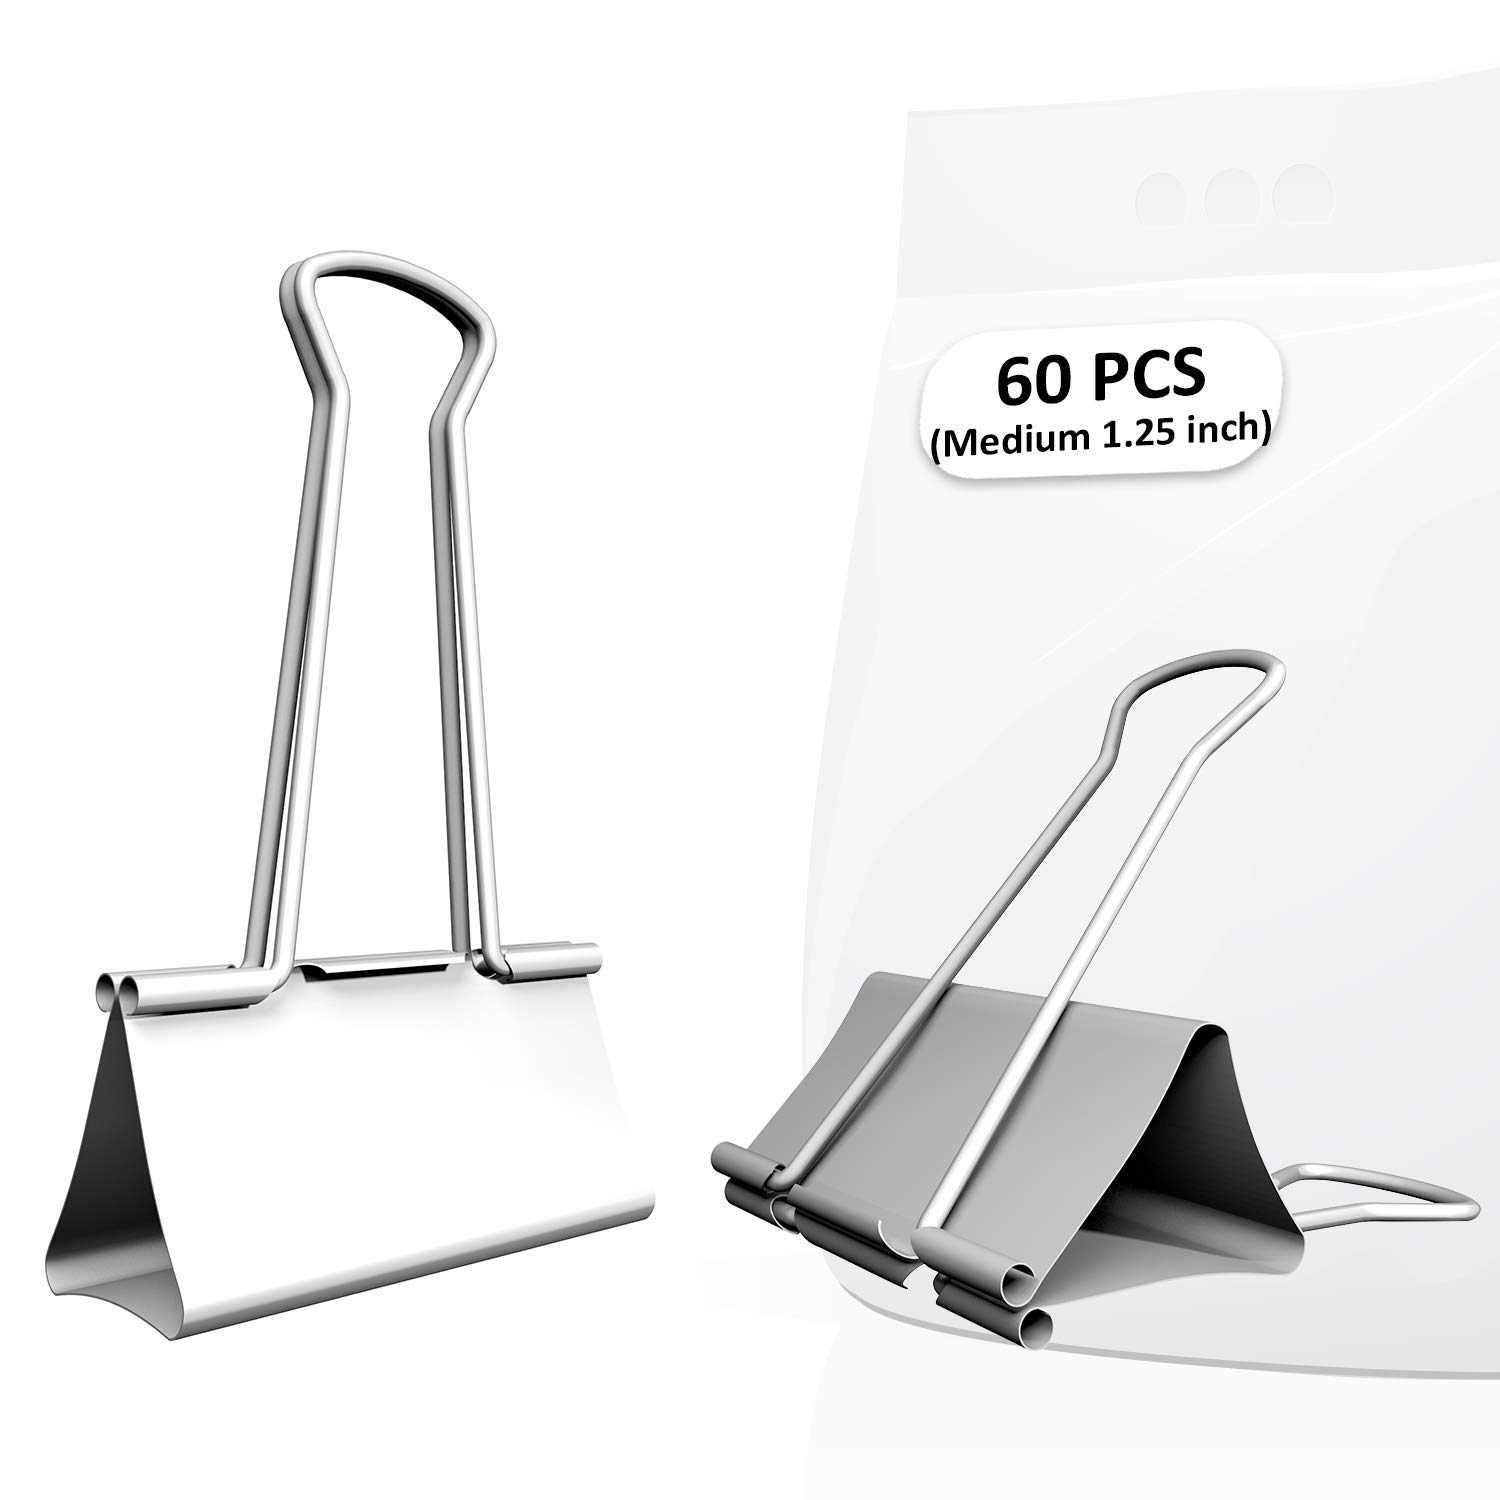 Nctinystore Binder Clips Medium Metal Clamp - 1-1/4 in (1.25 inch) (Silver, Medium, 60 Count)